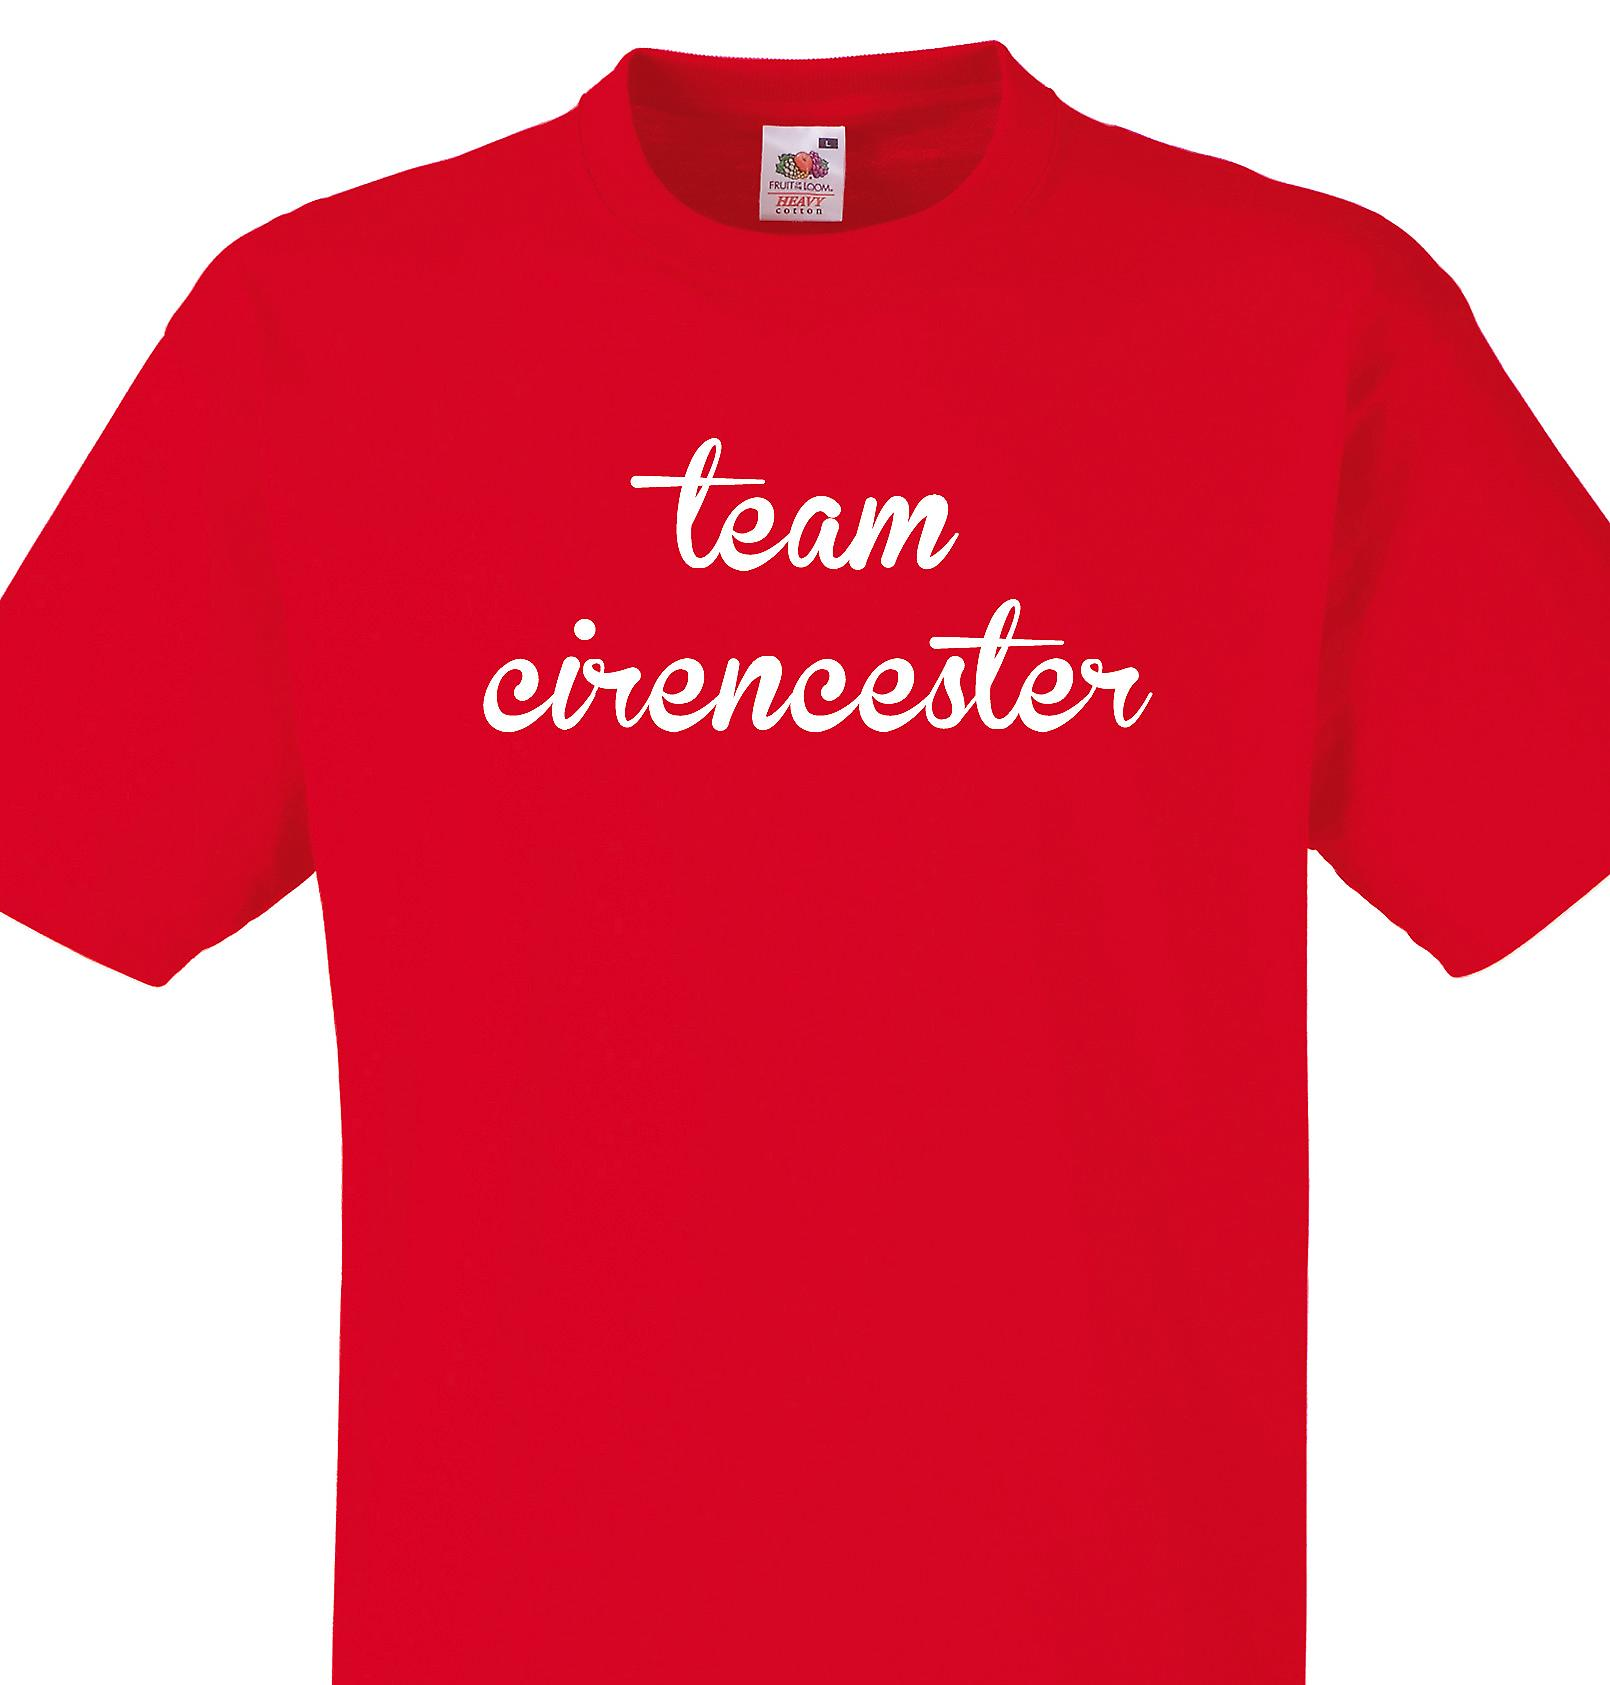 Team Cirencester Red T shirt